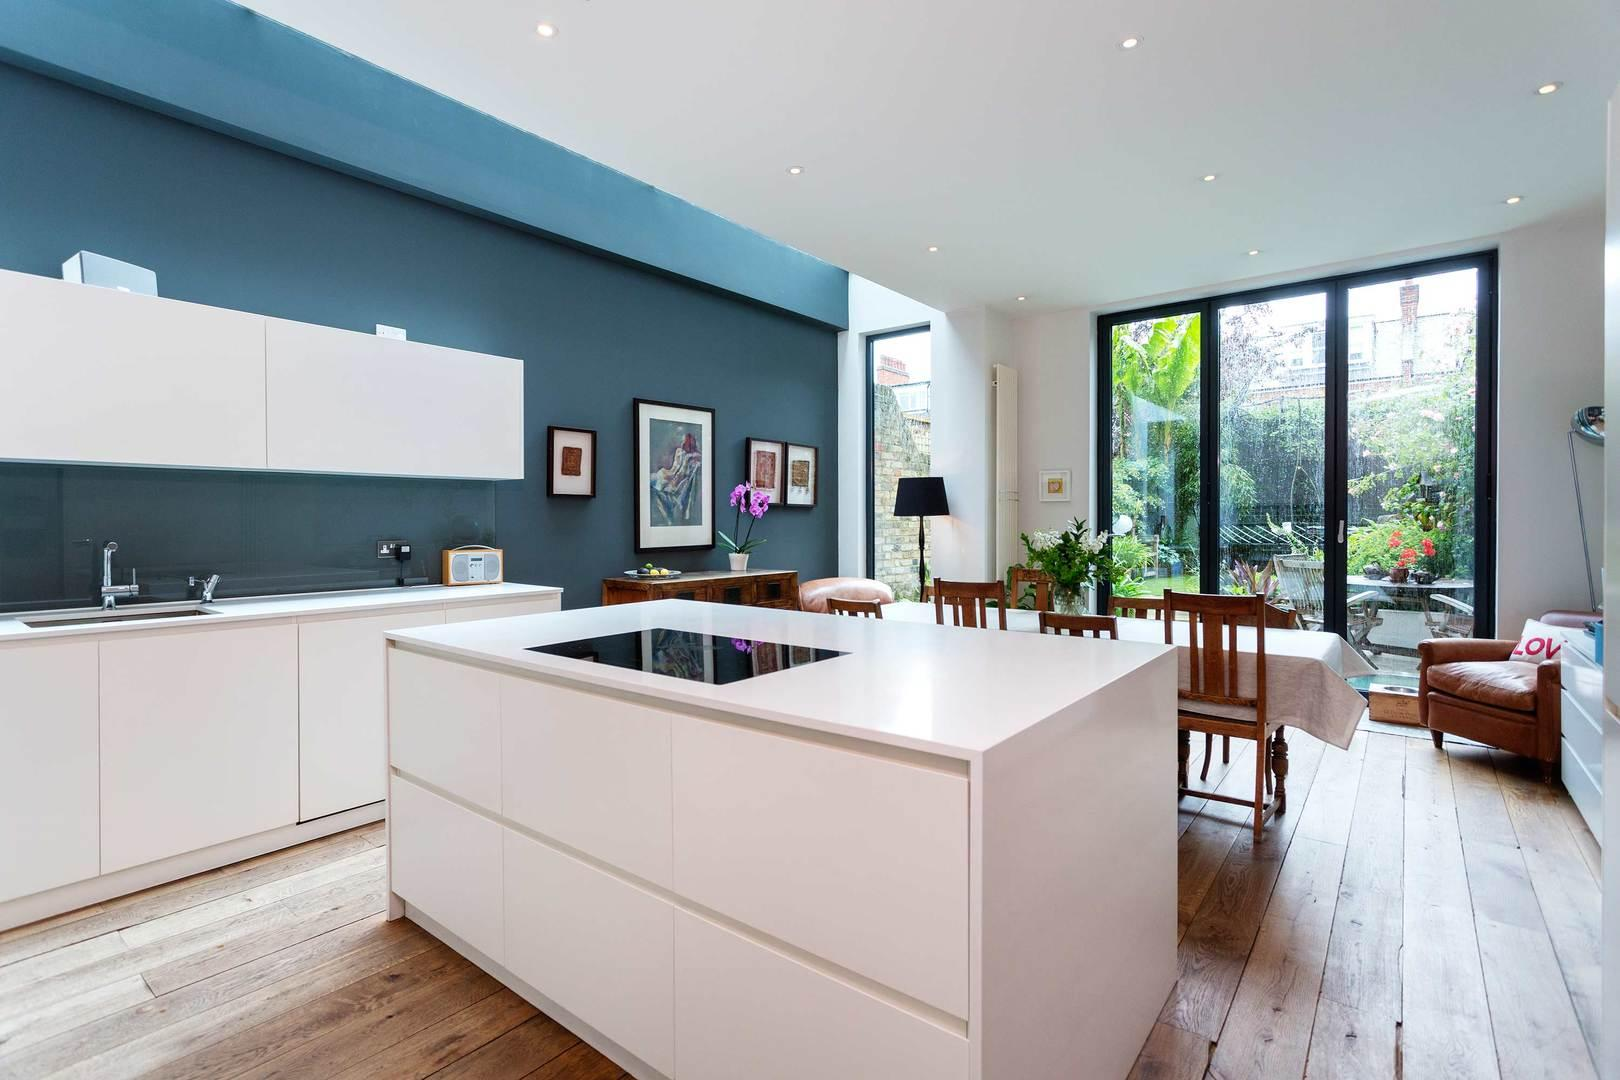 Property Image 1 - Stylish Townhouse in Trendy Notting Hill Neighbourhood